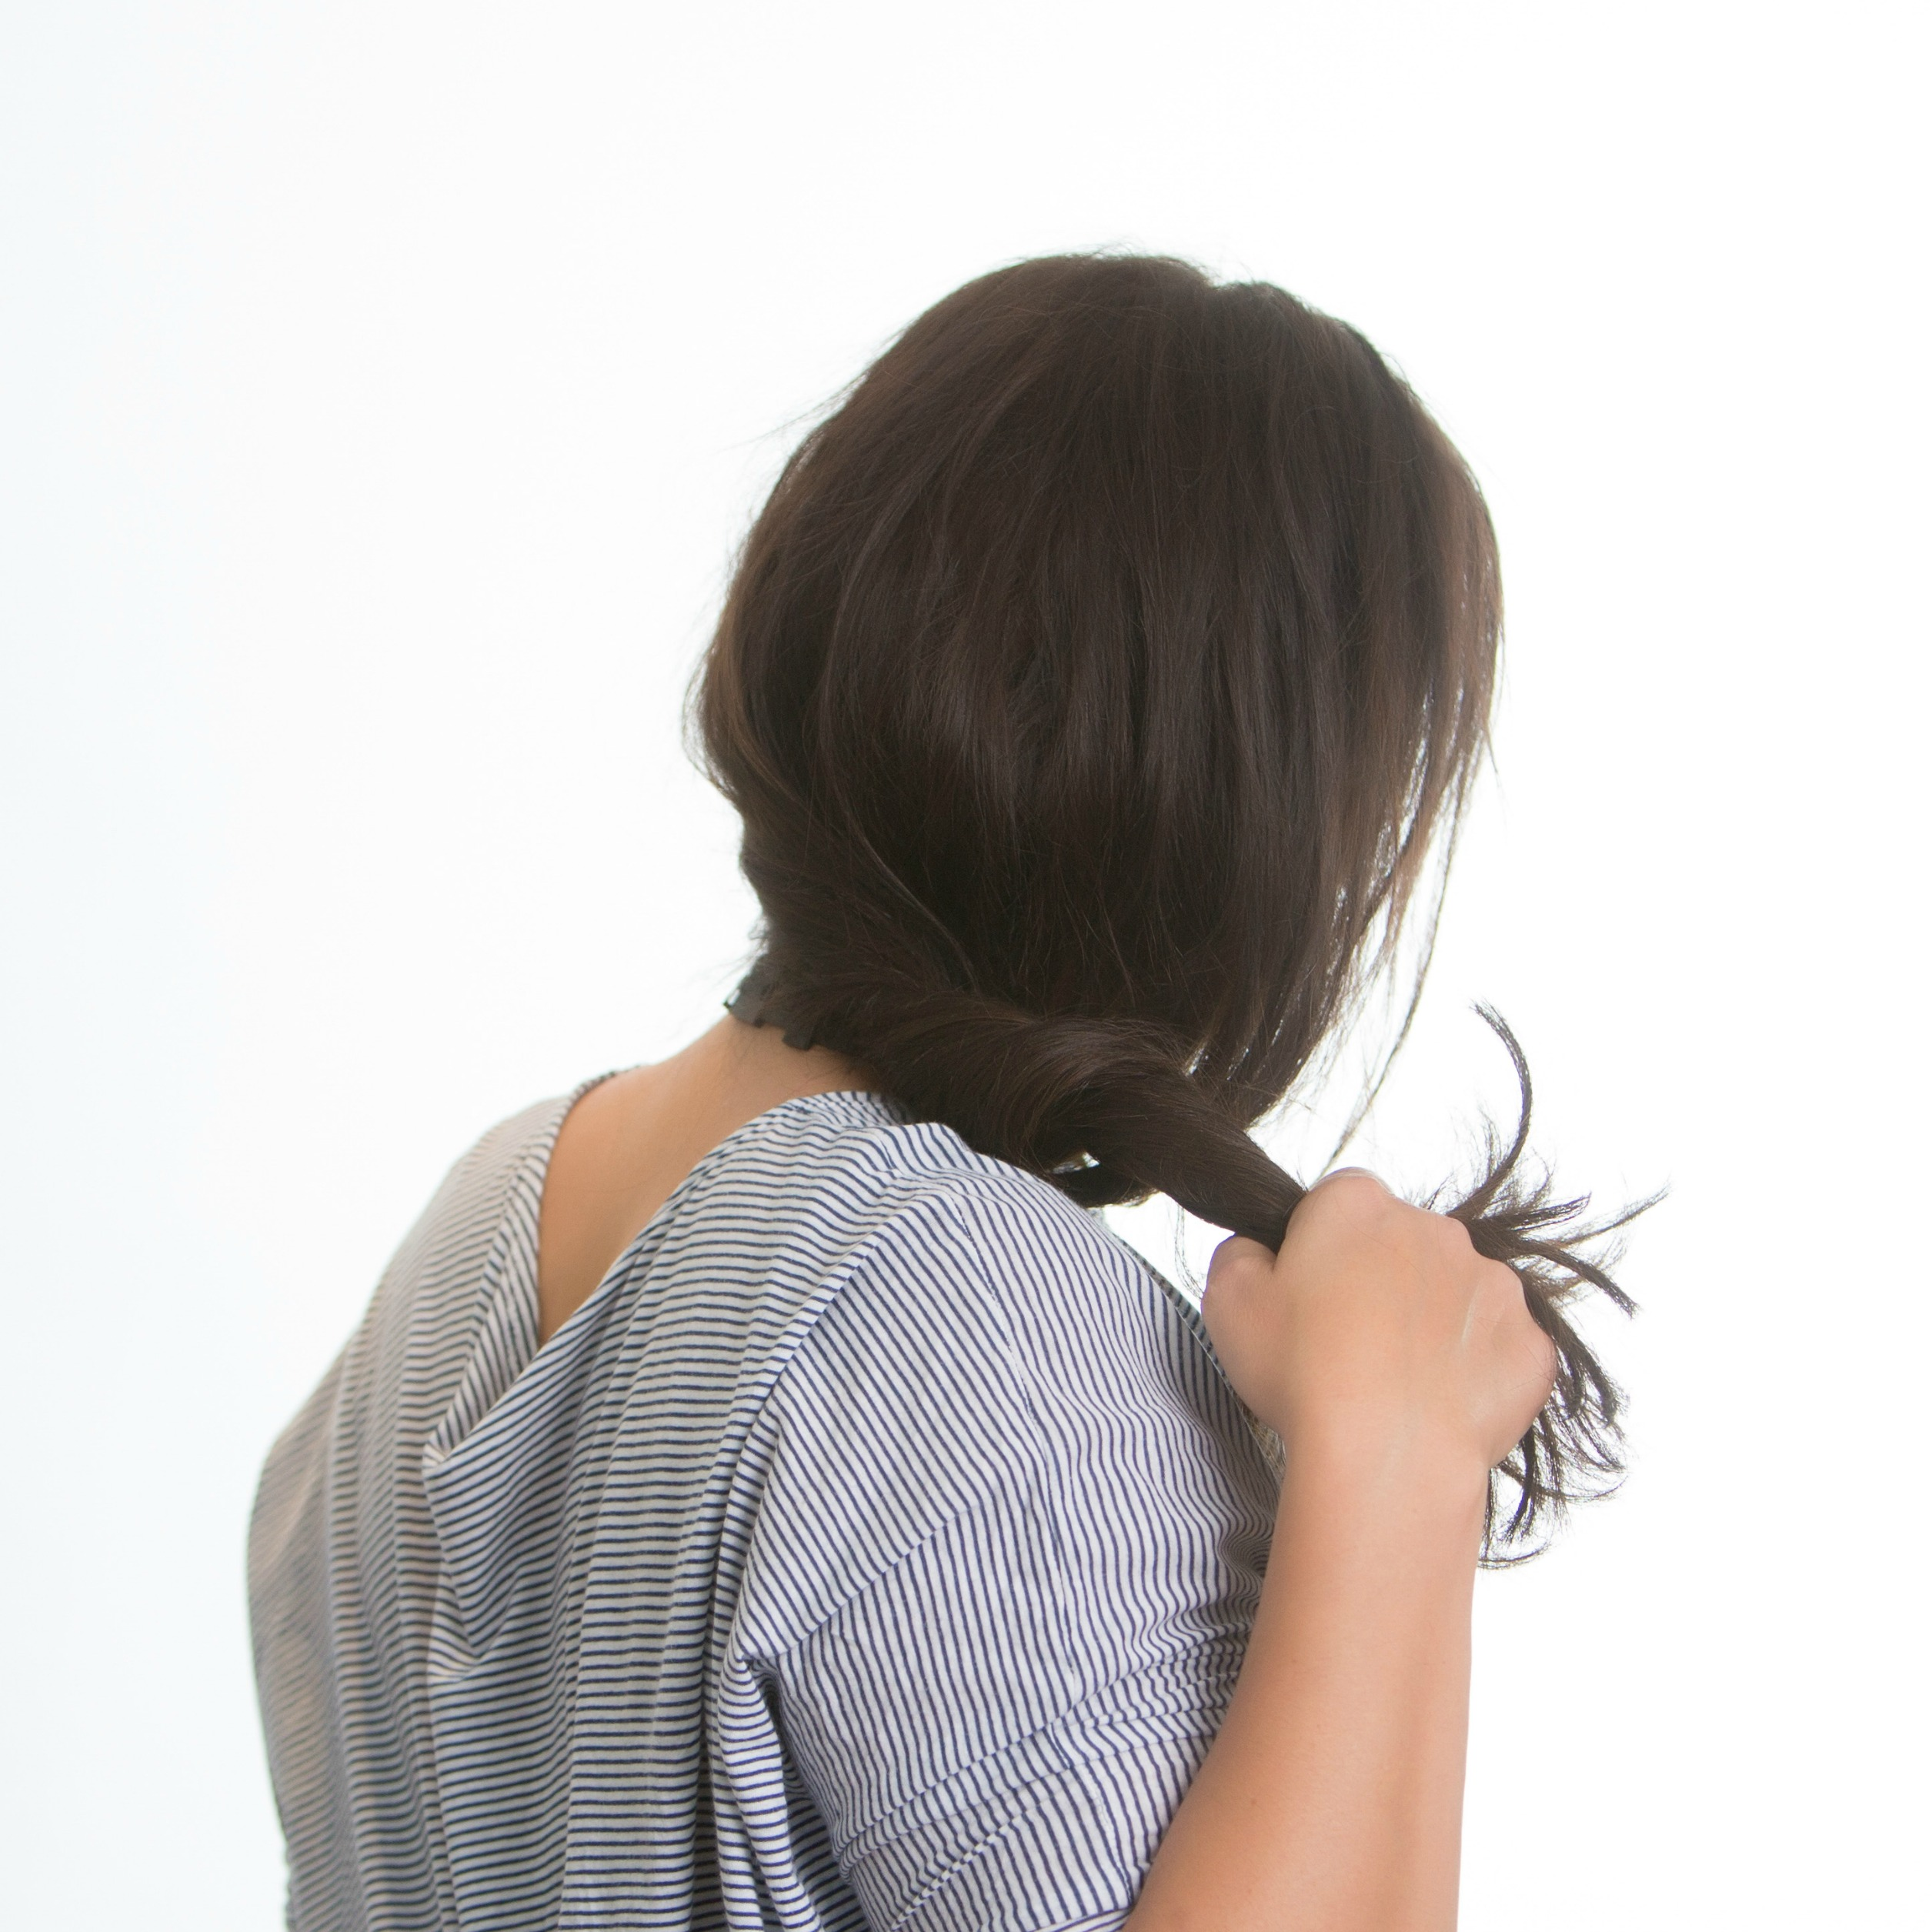 3 twist up around the nape of your neck